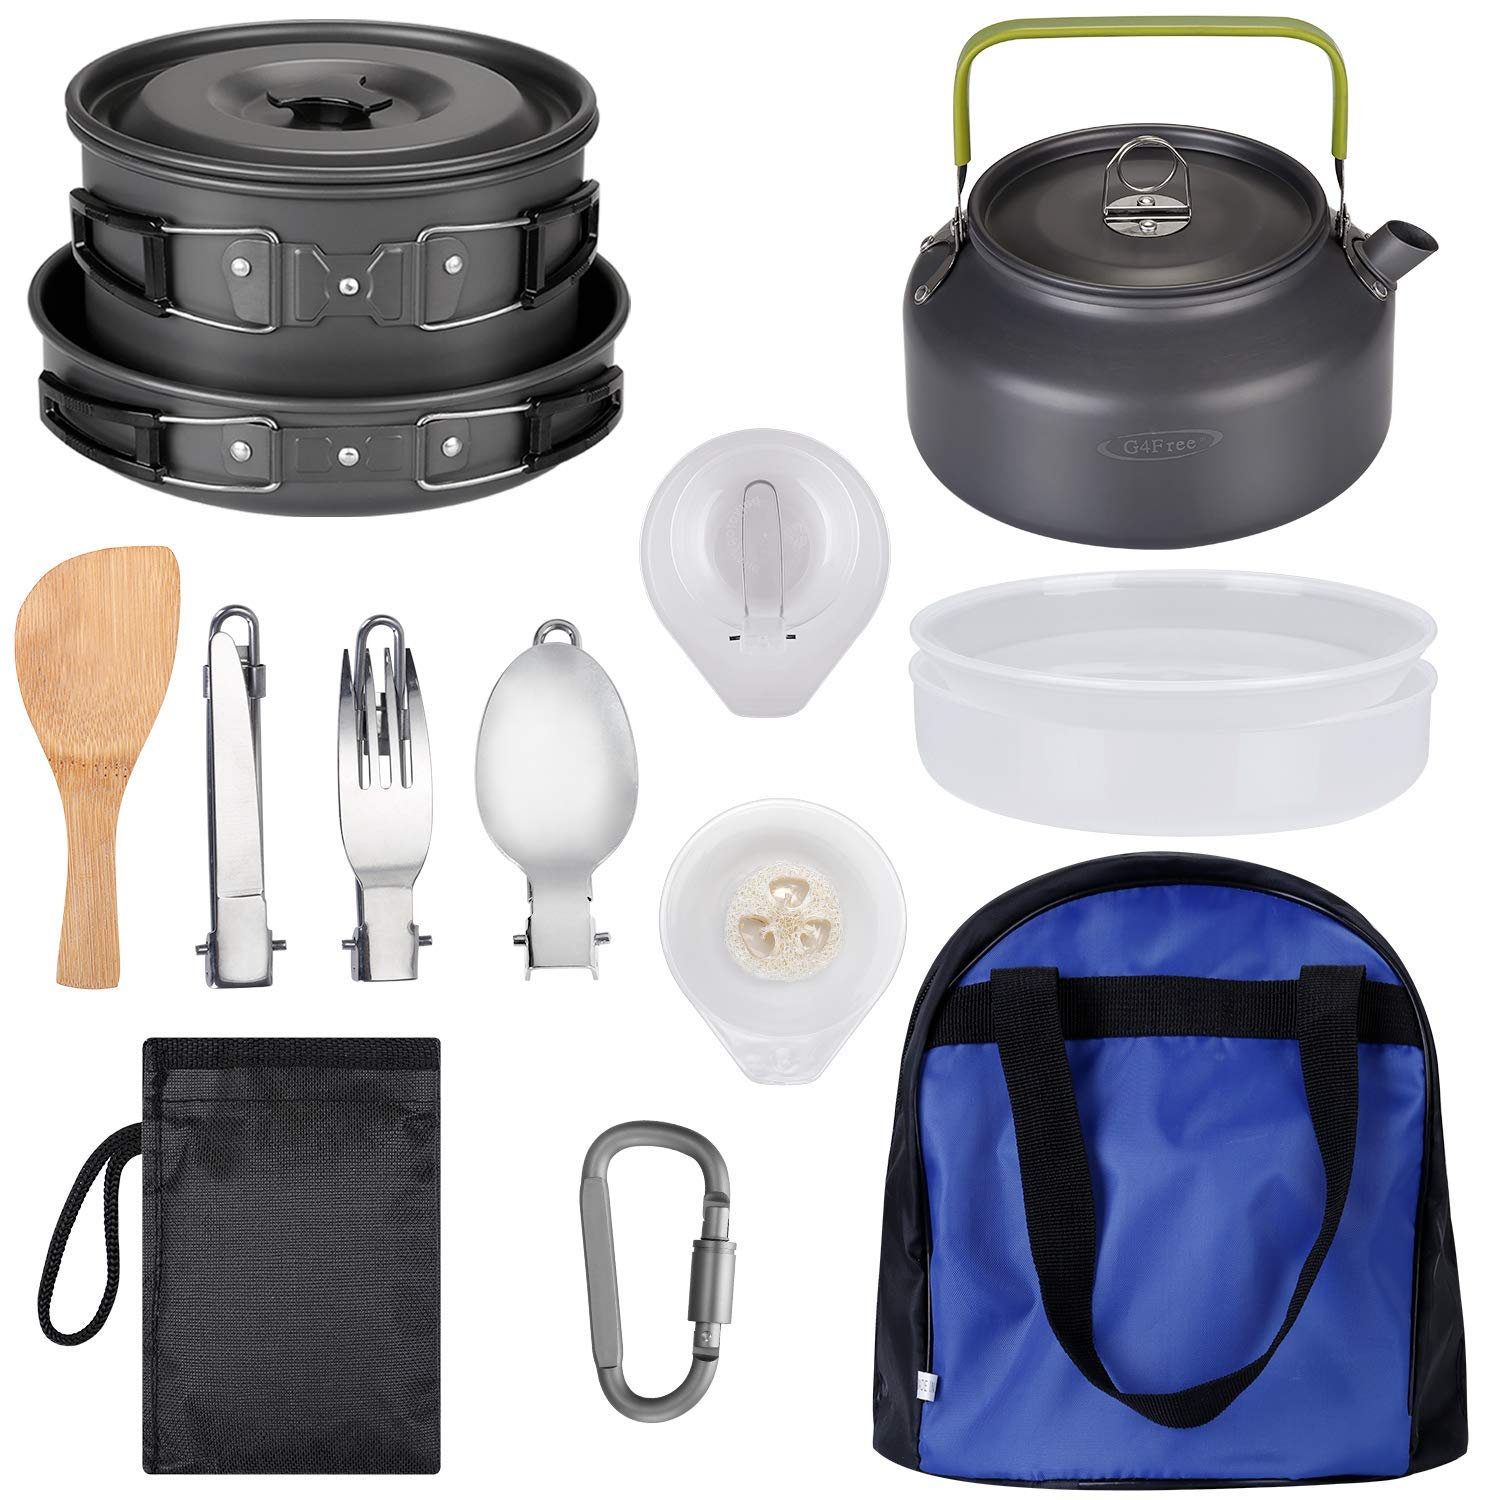 G4Free Camping Cookware Mess Kit, Lightweight Pot Pan Kettle Fork Knife Spoon Kit for Backpacking, Outdoor Camping Hiking and Picnic(19pcs Set) by G4Free